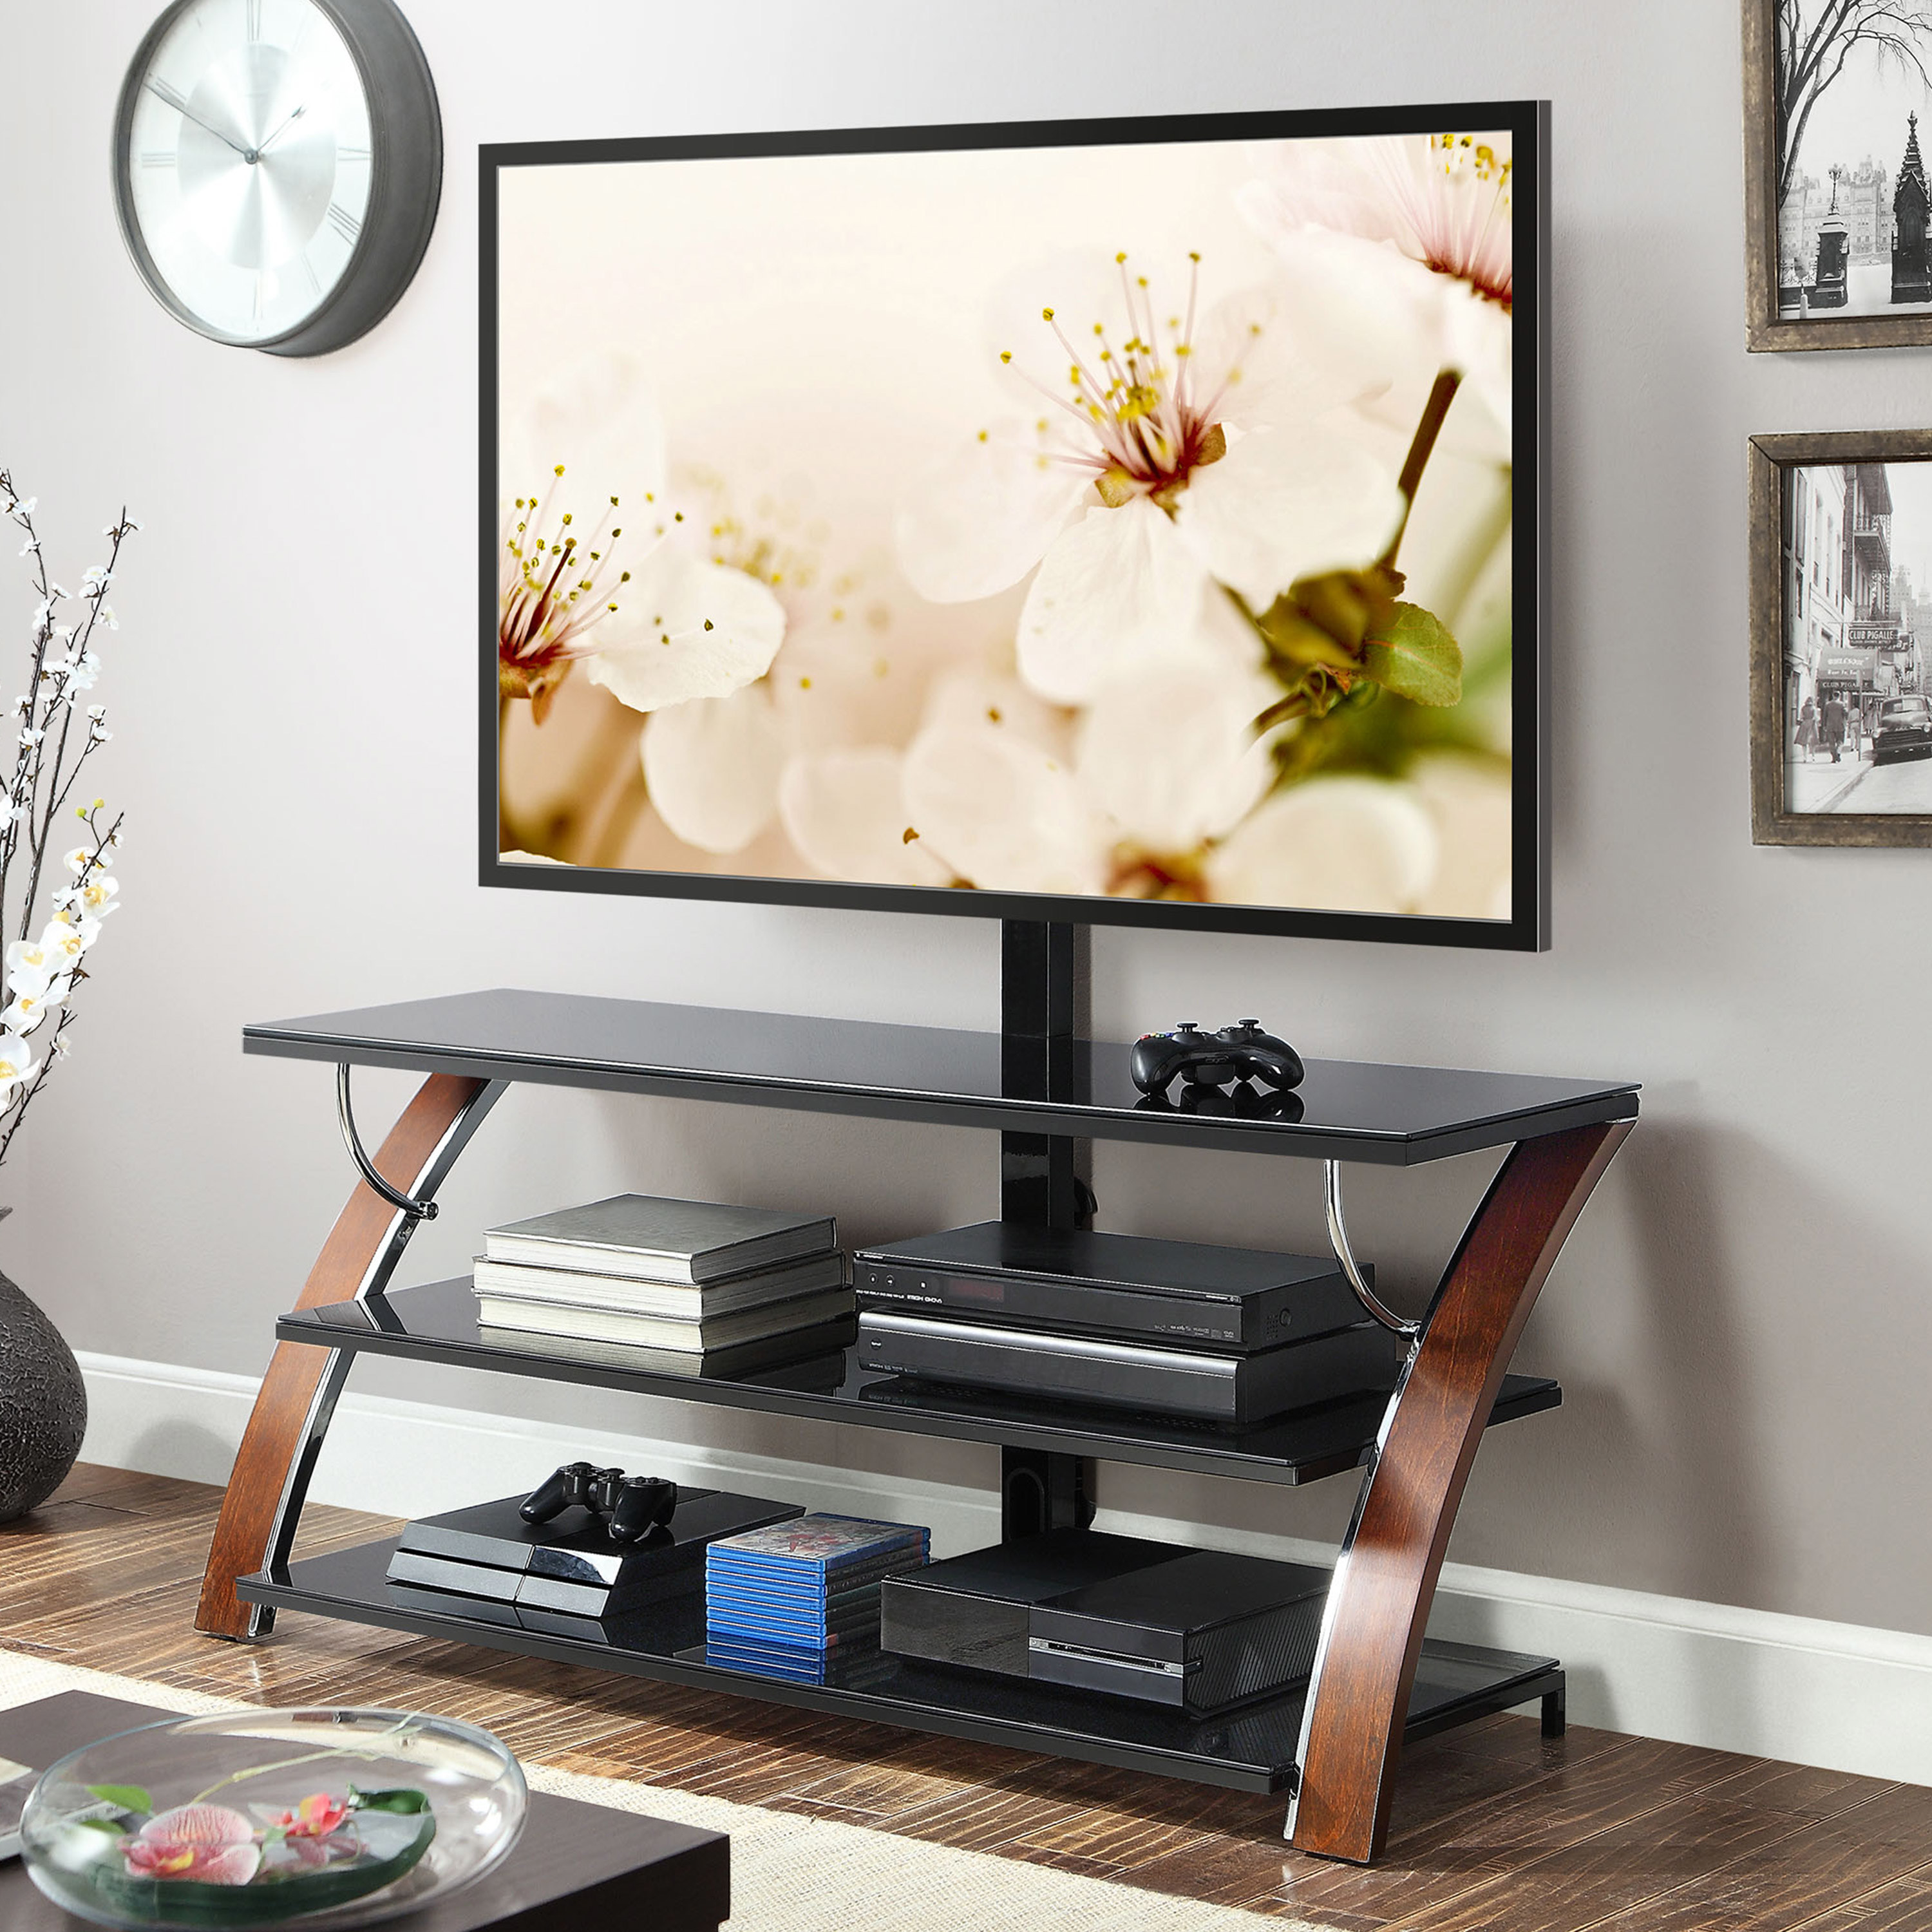 The brown cherry TV stand